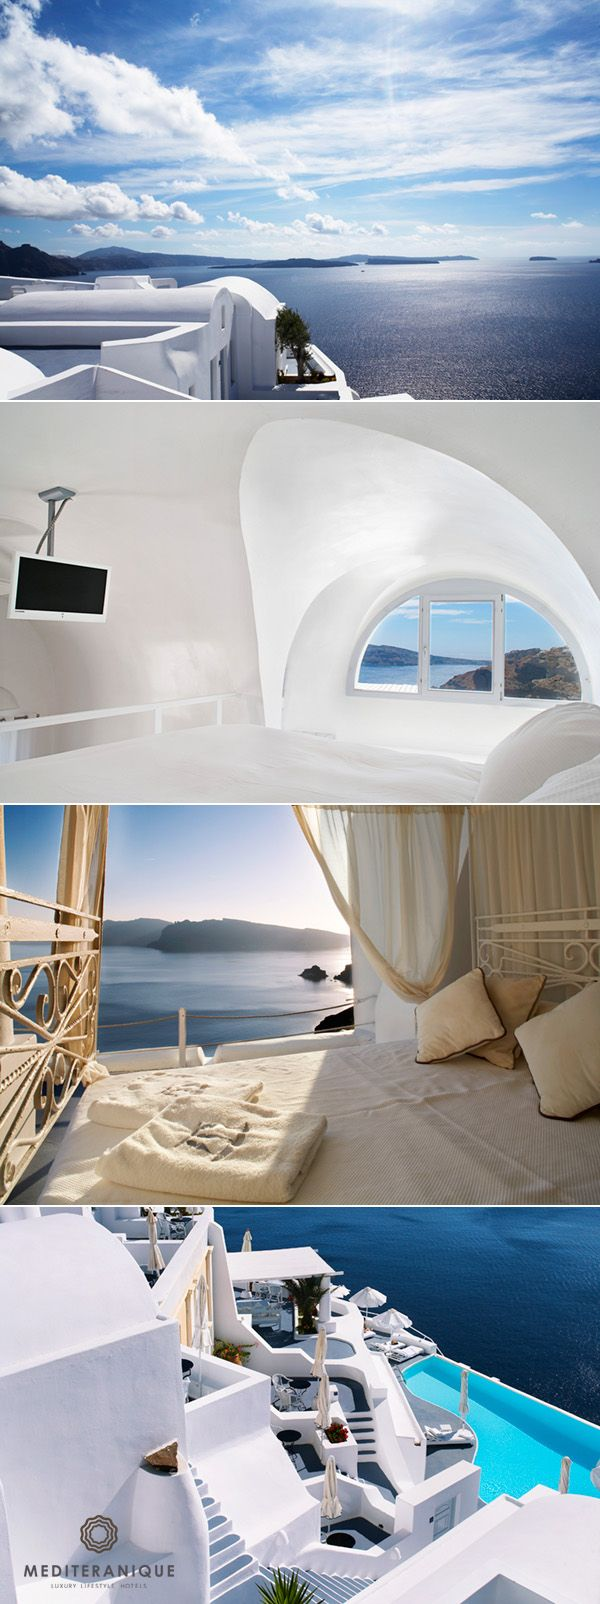 The Katikies Hotel, one of the most breathtaking hotels in Greece